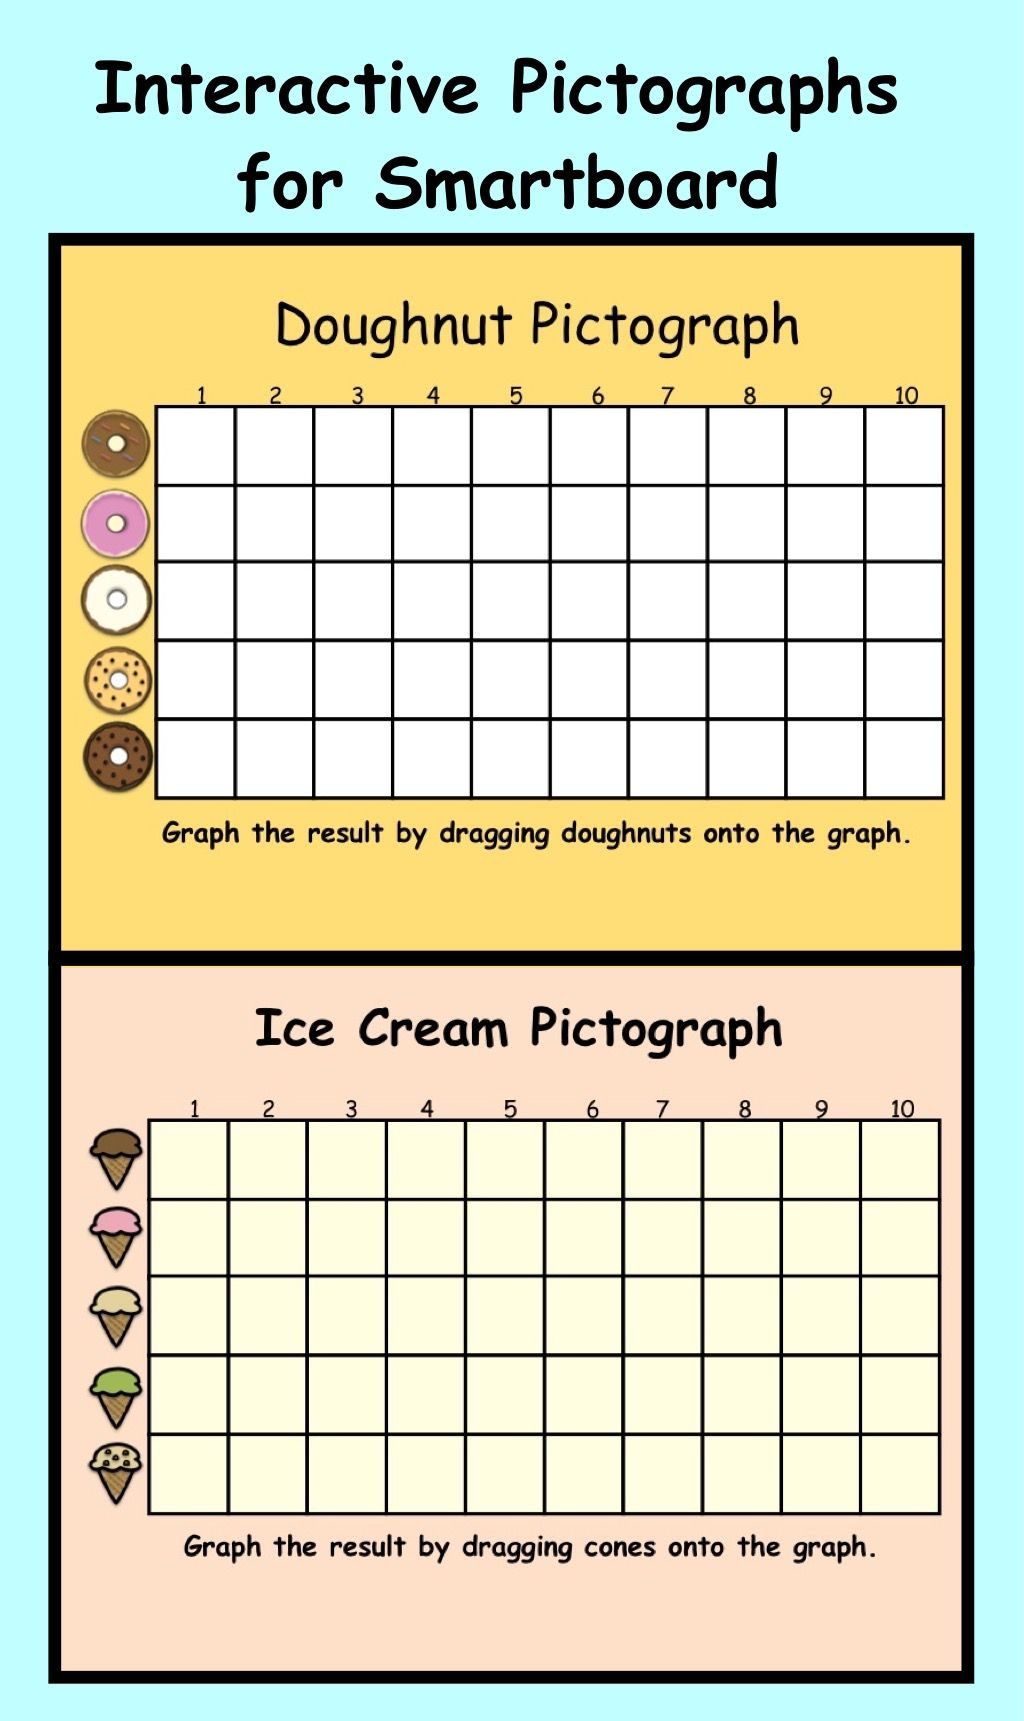 small resolution of Interactive Pictographs for Smartboard   Smart board